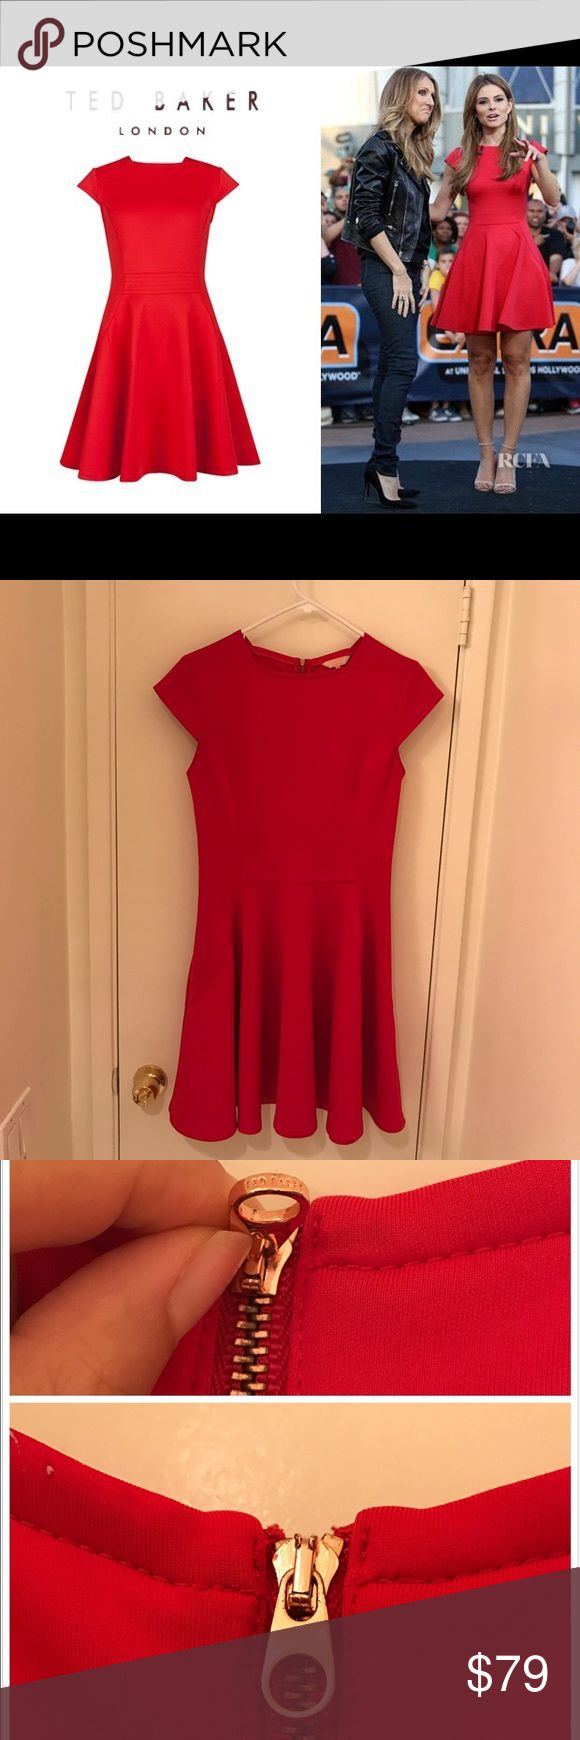 Ted Baker Red Dress Very beautiful red dress from Ted Baker,  I only wore 2-3 times. It's a U.K. Size 2, so it's good for US size 4-6. The instead of zipper head has a little black metal stain, but the outside side is perfect, comes with the original dust bag Ted Baker Dresses